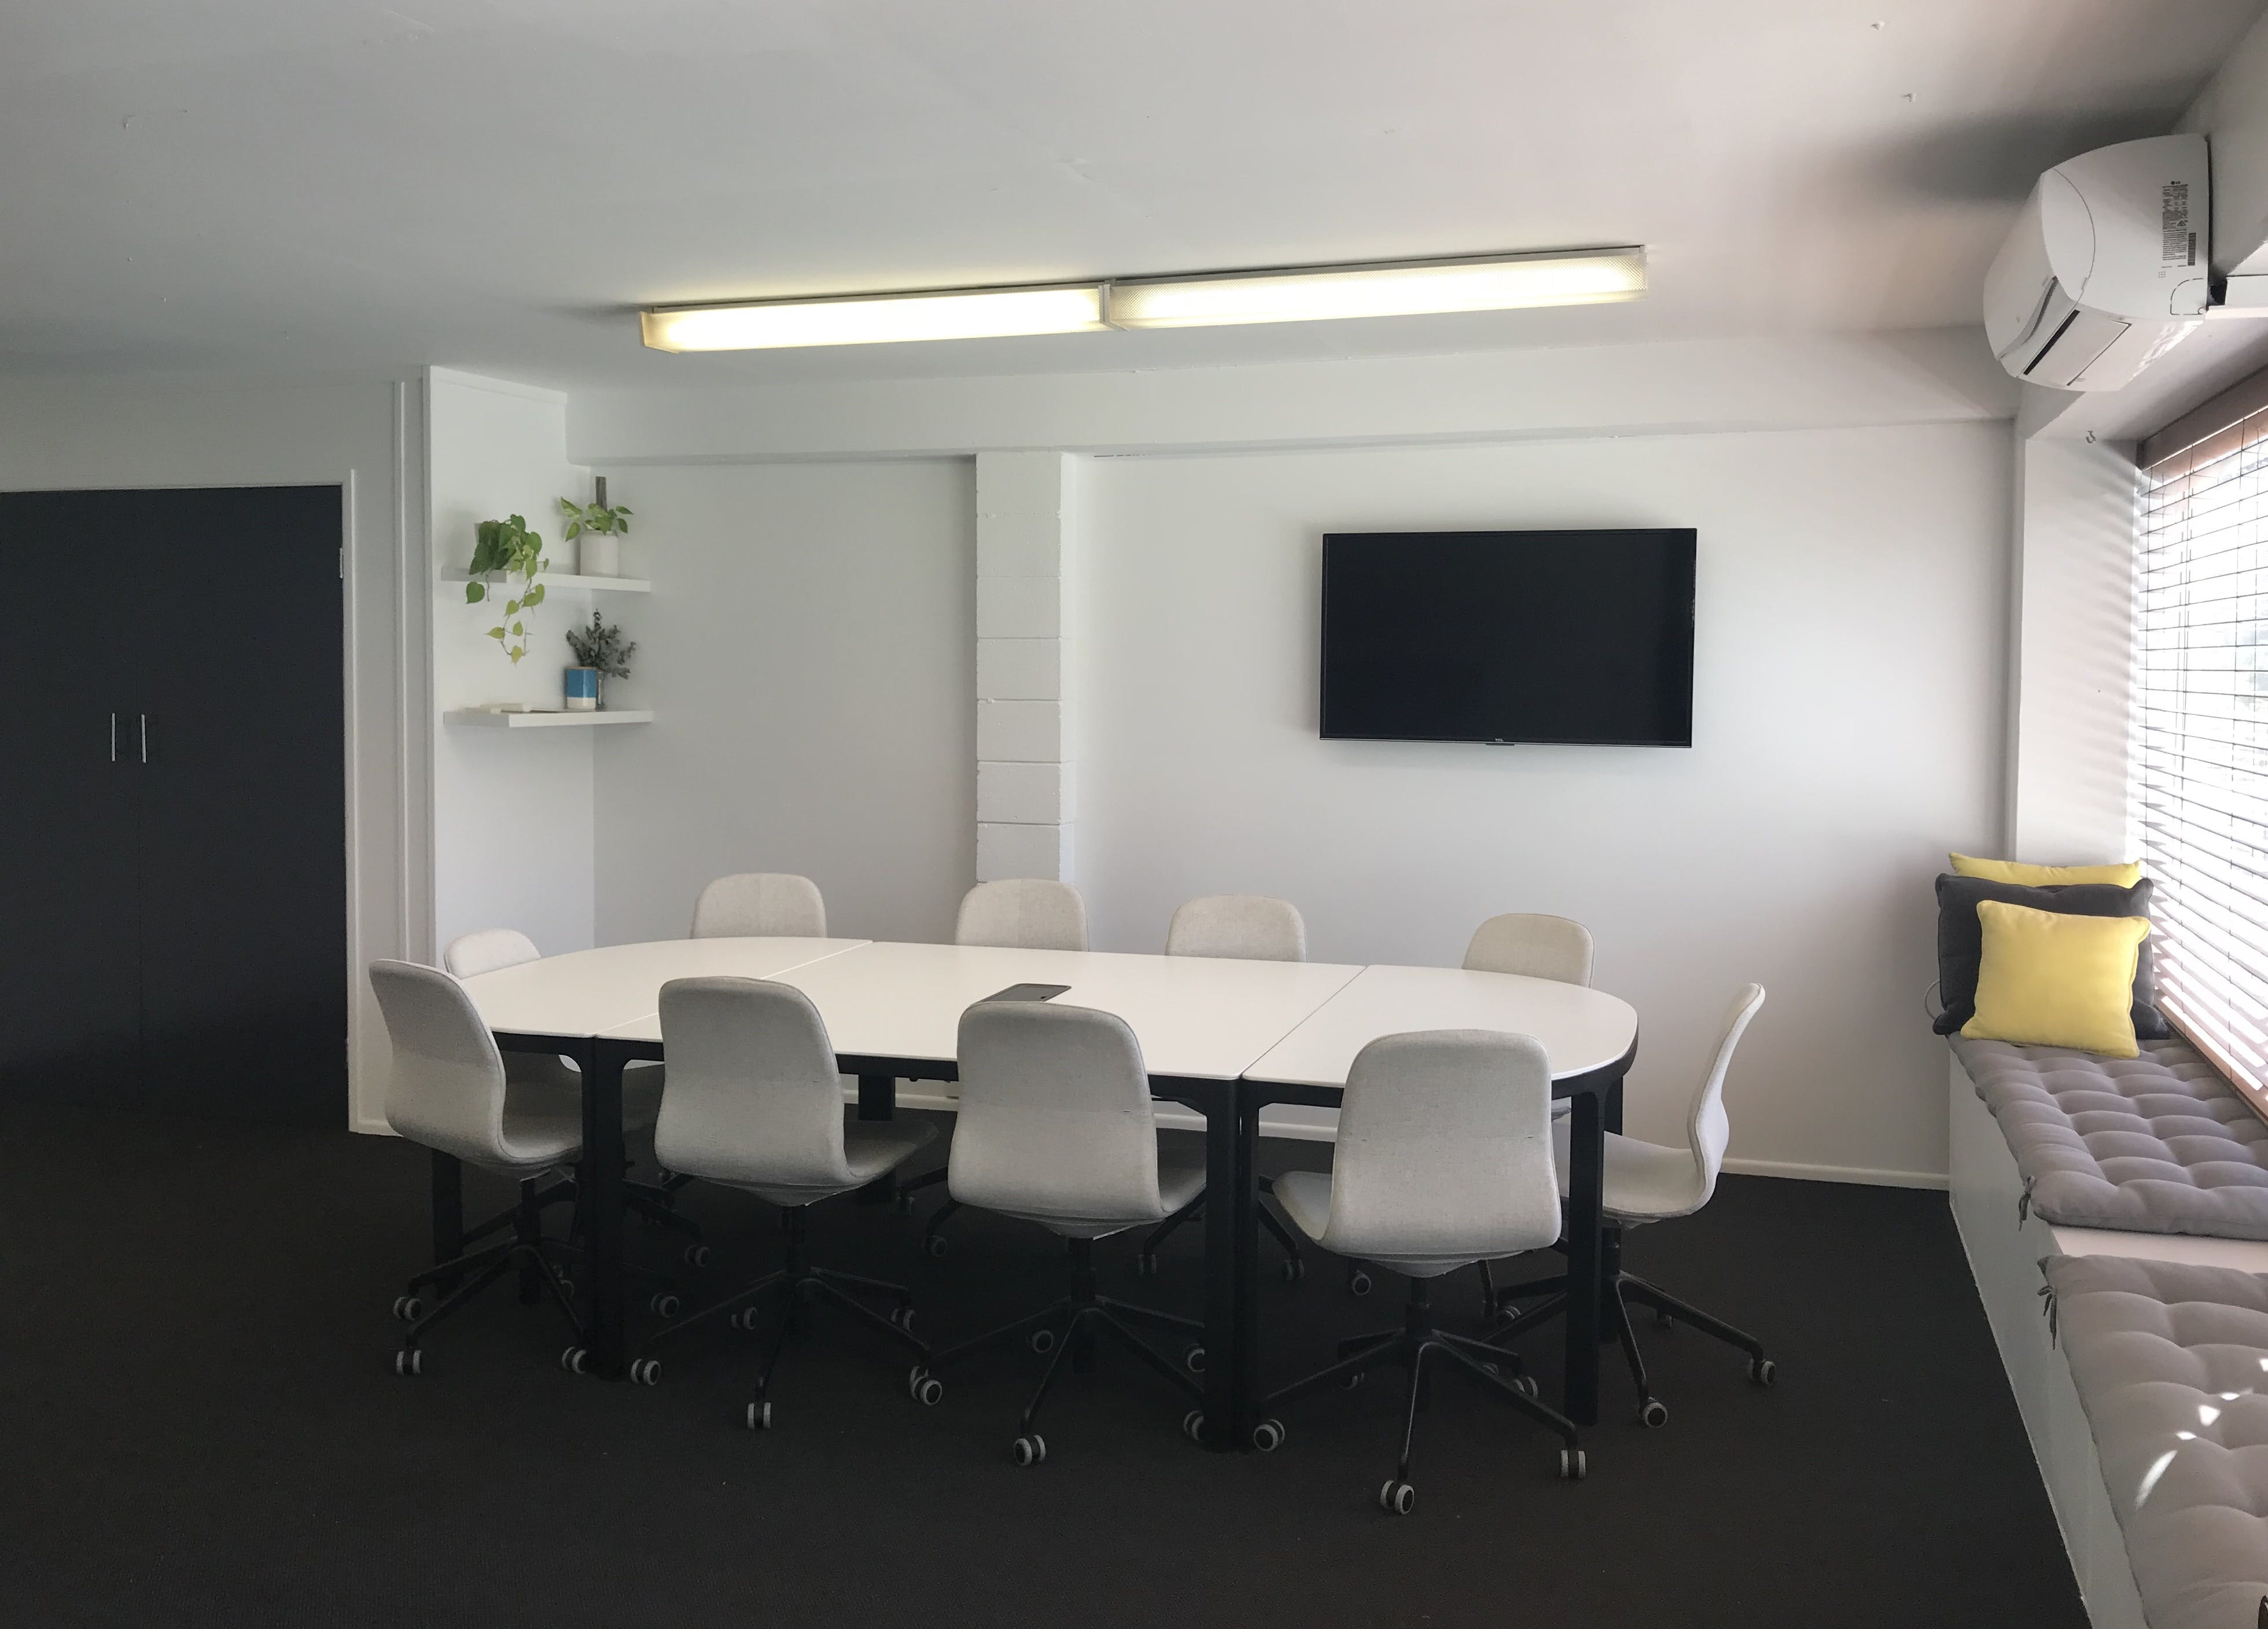 Burleigh Boardroom, meeting room at McDonald House, image 1